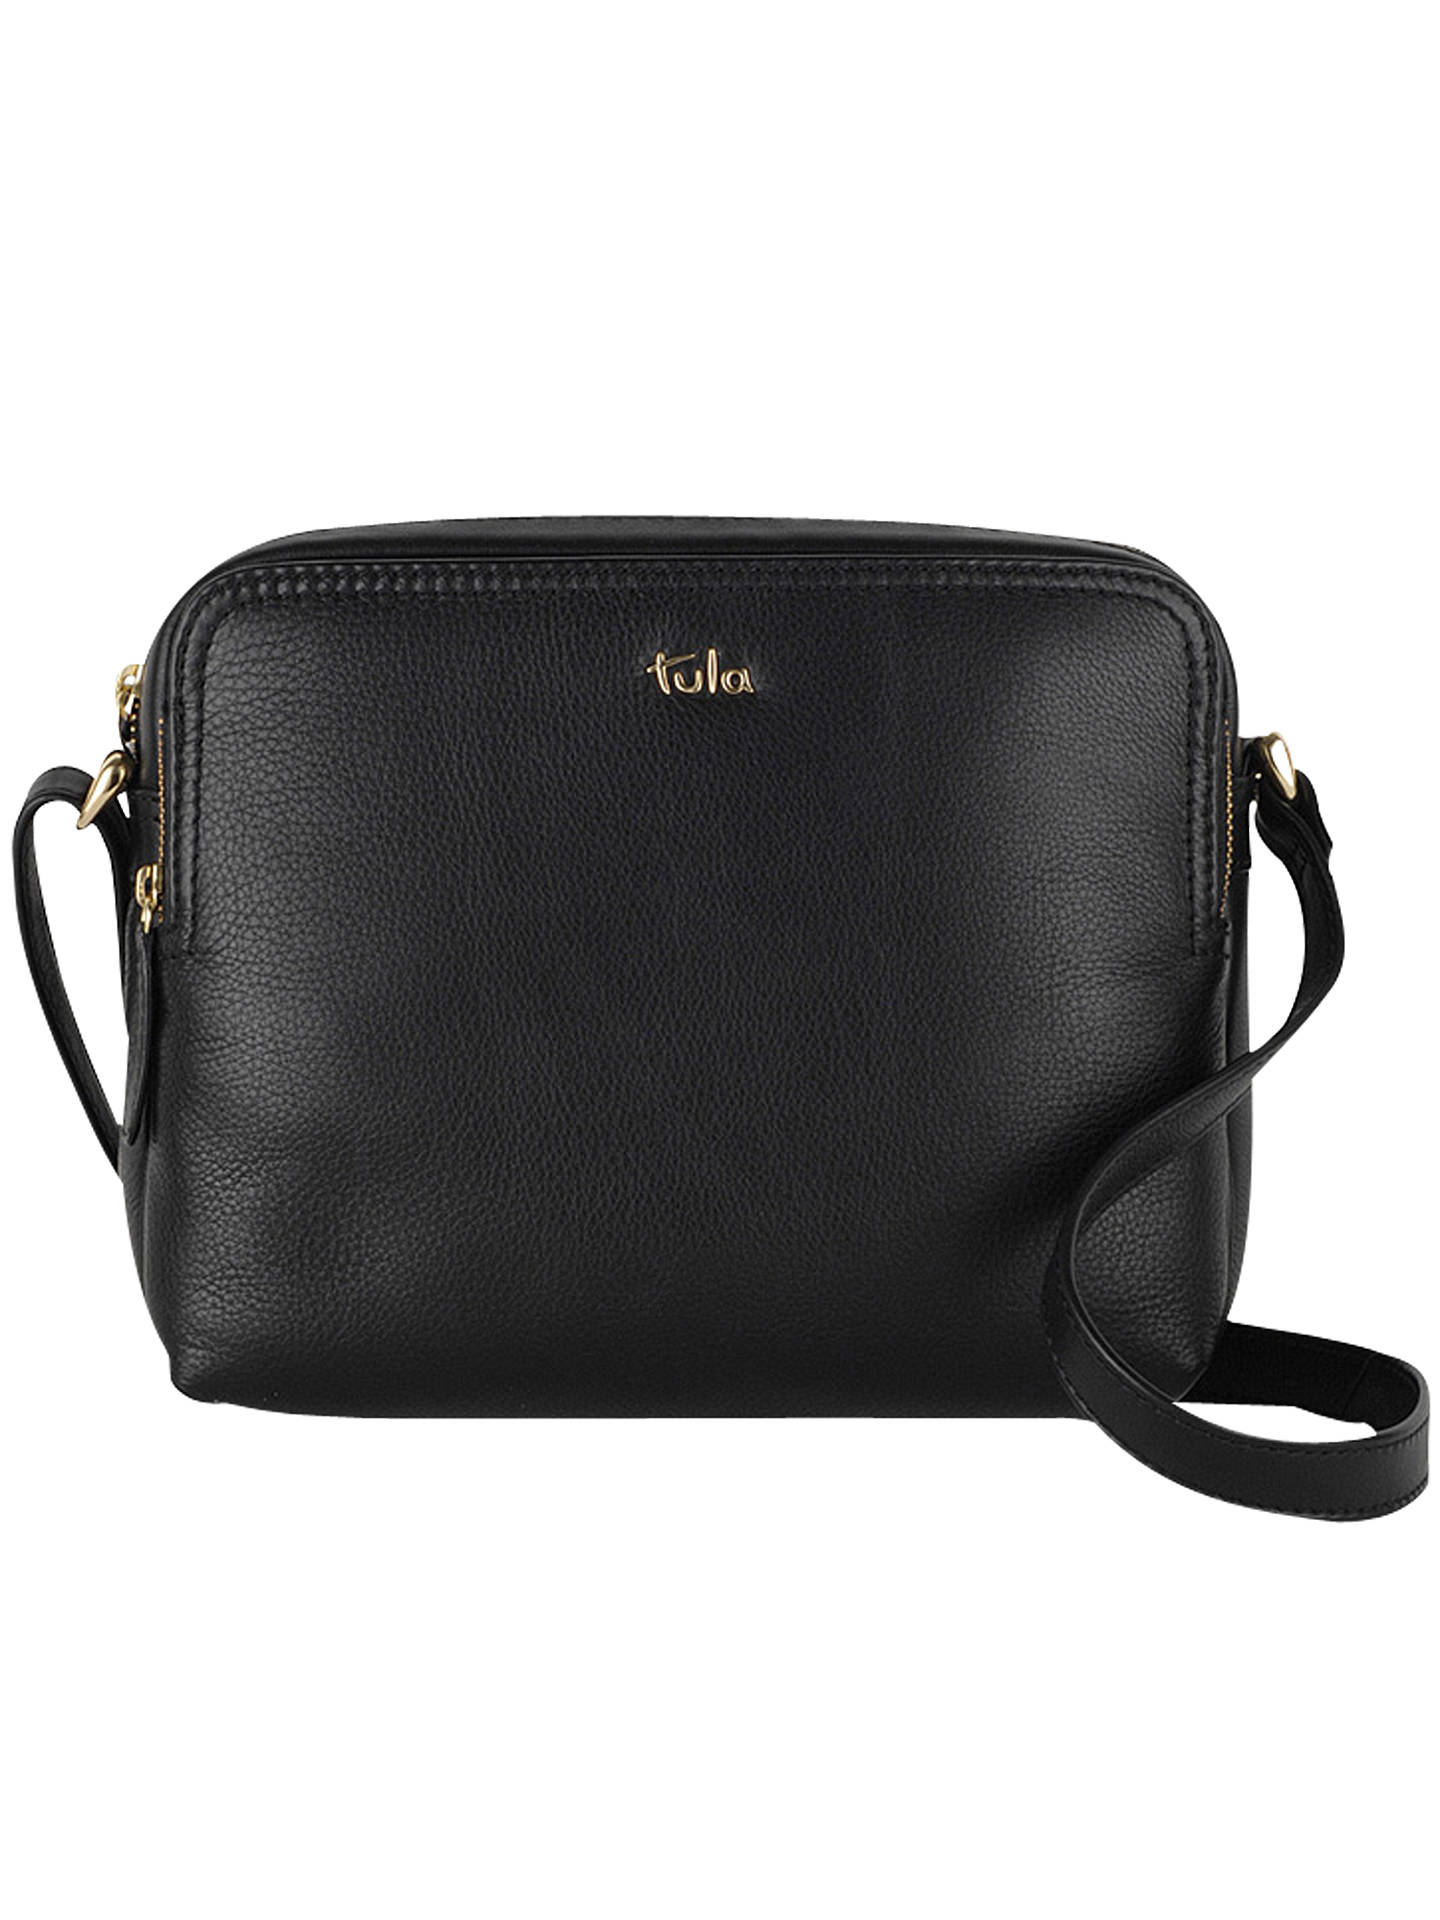 8fdd00b112 Buy Tula Nappa Original Leather Medium Cross Body Bag, Black Online at  johnlewis.com ...